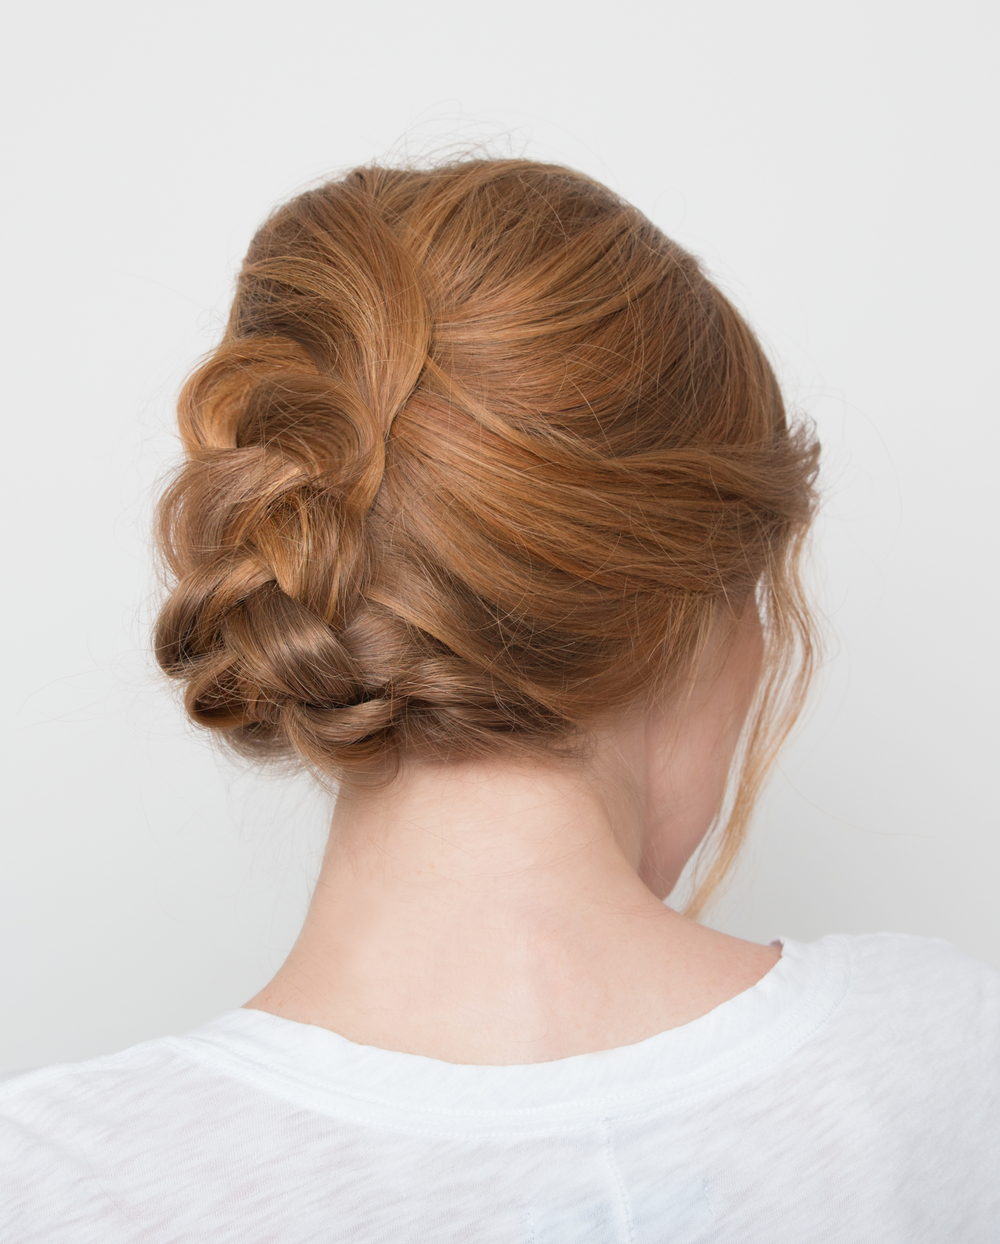 braided-back-side-angle.jpg